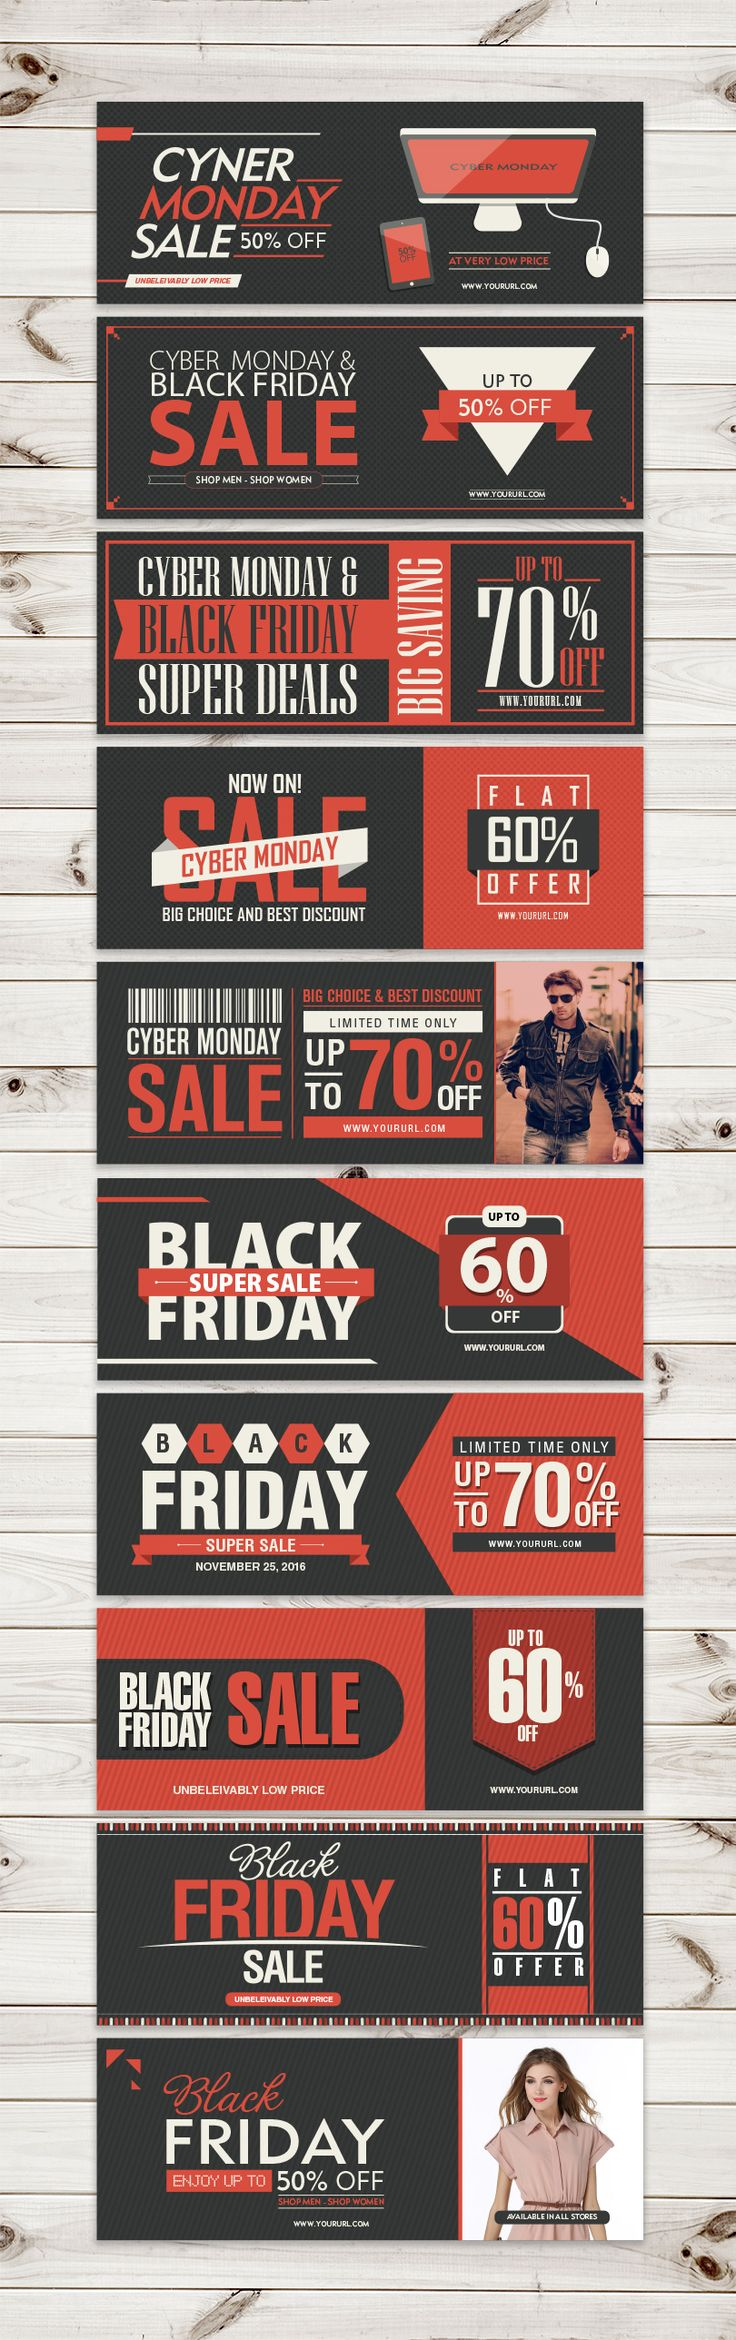 black friday cyber monday web banners in ai eps cdr pdf format